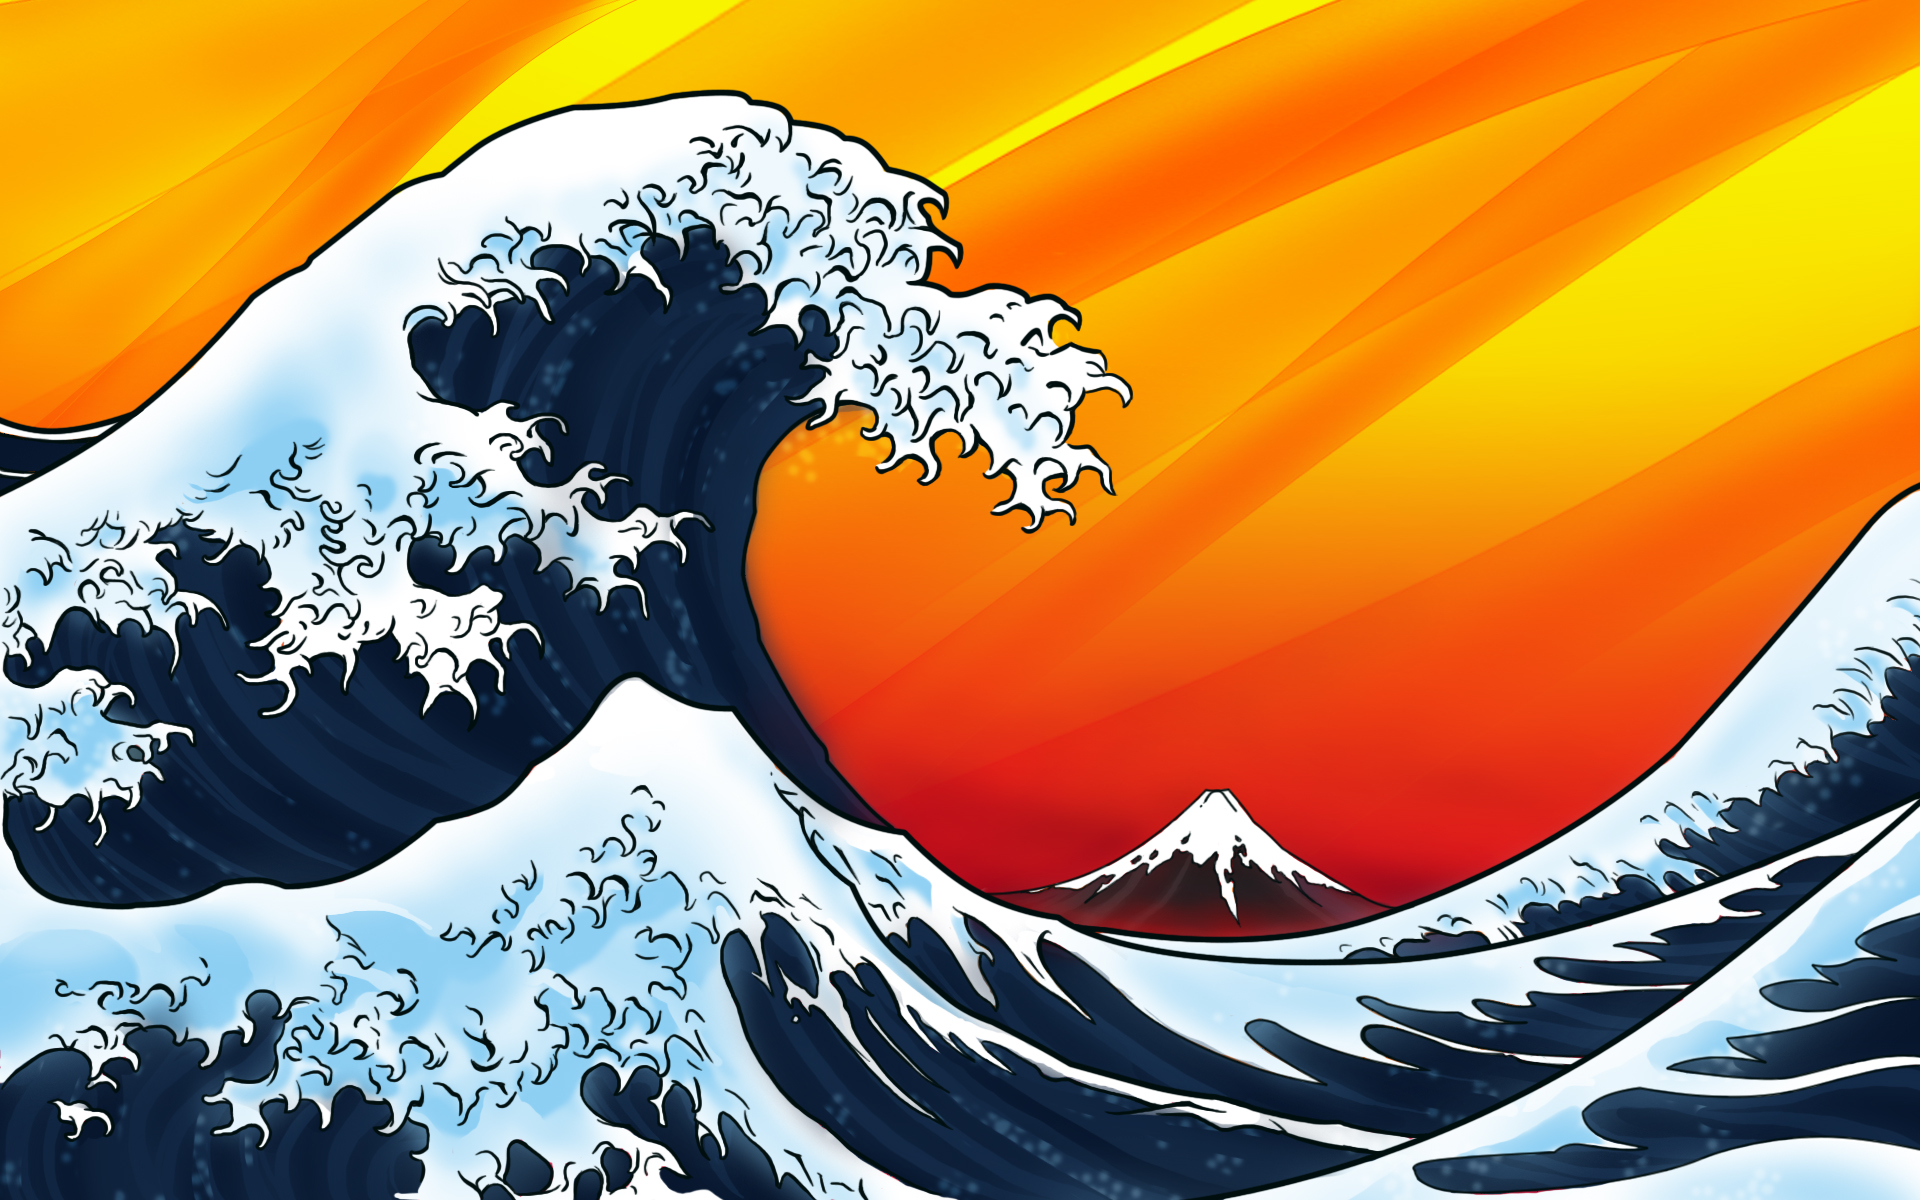 Wave_by_Silverjerk_at_Deviantart.jpg